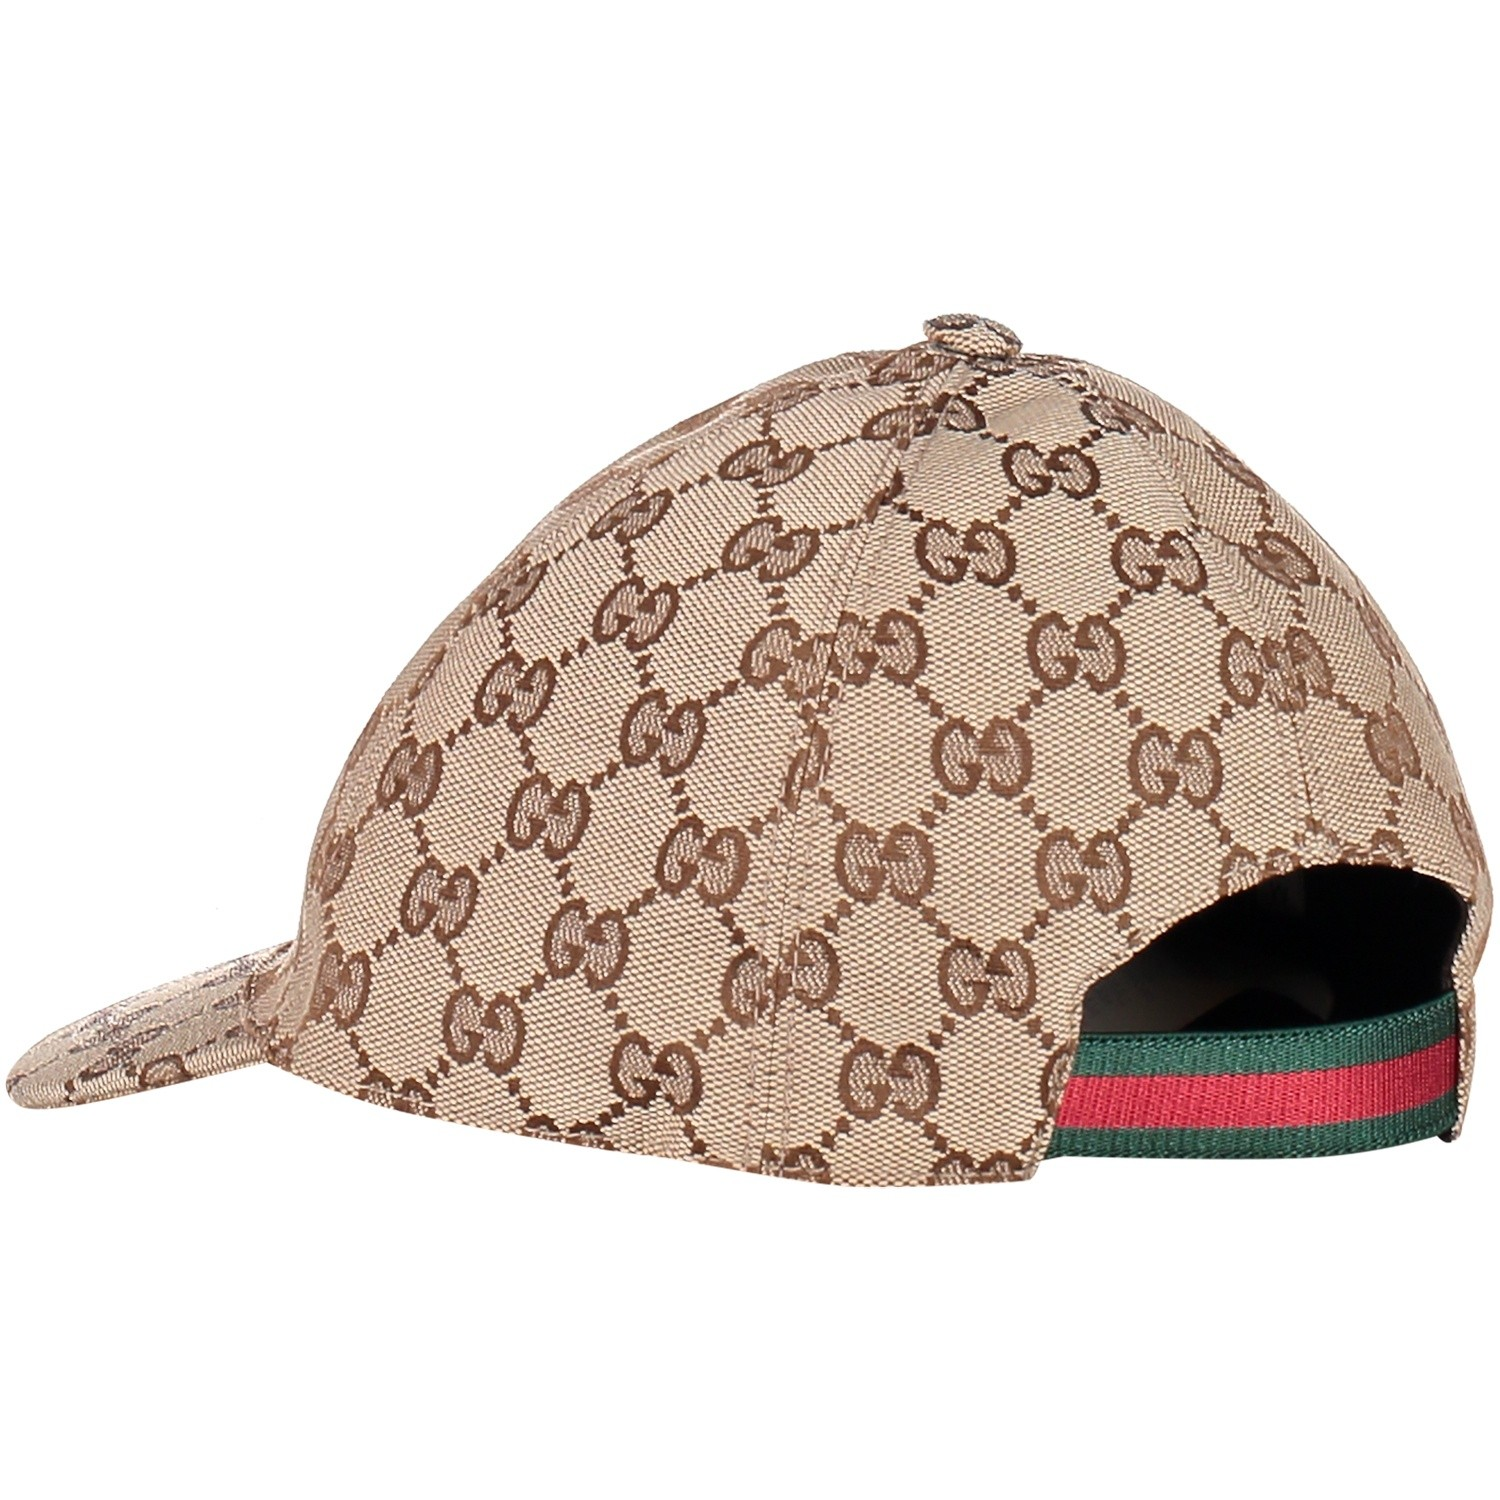 Gucci 481774 Unisex Junior Brown at Coccinelle 805ef45f4ac